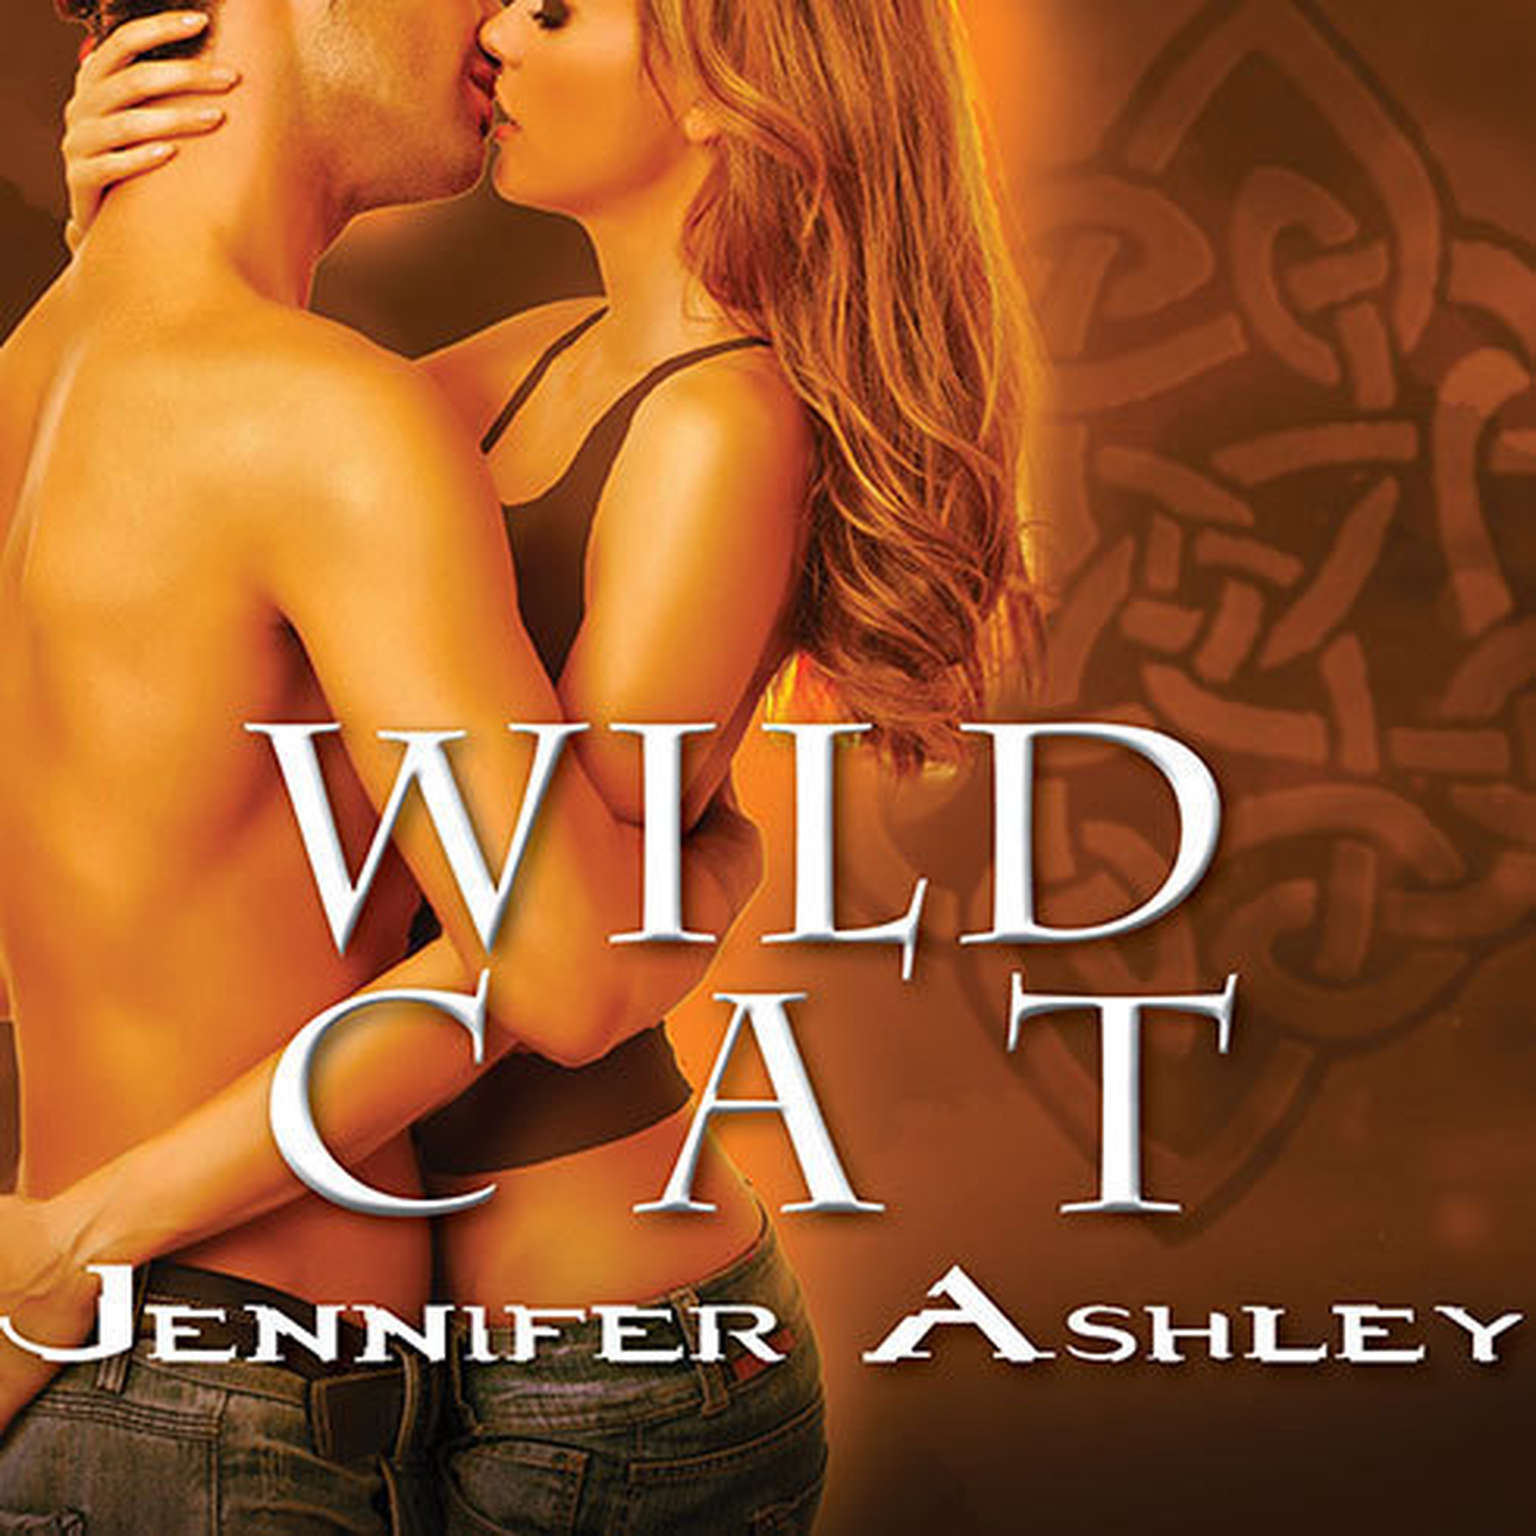 Printable Wild Cat Audiobook Cover Art